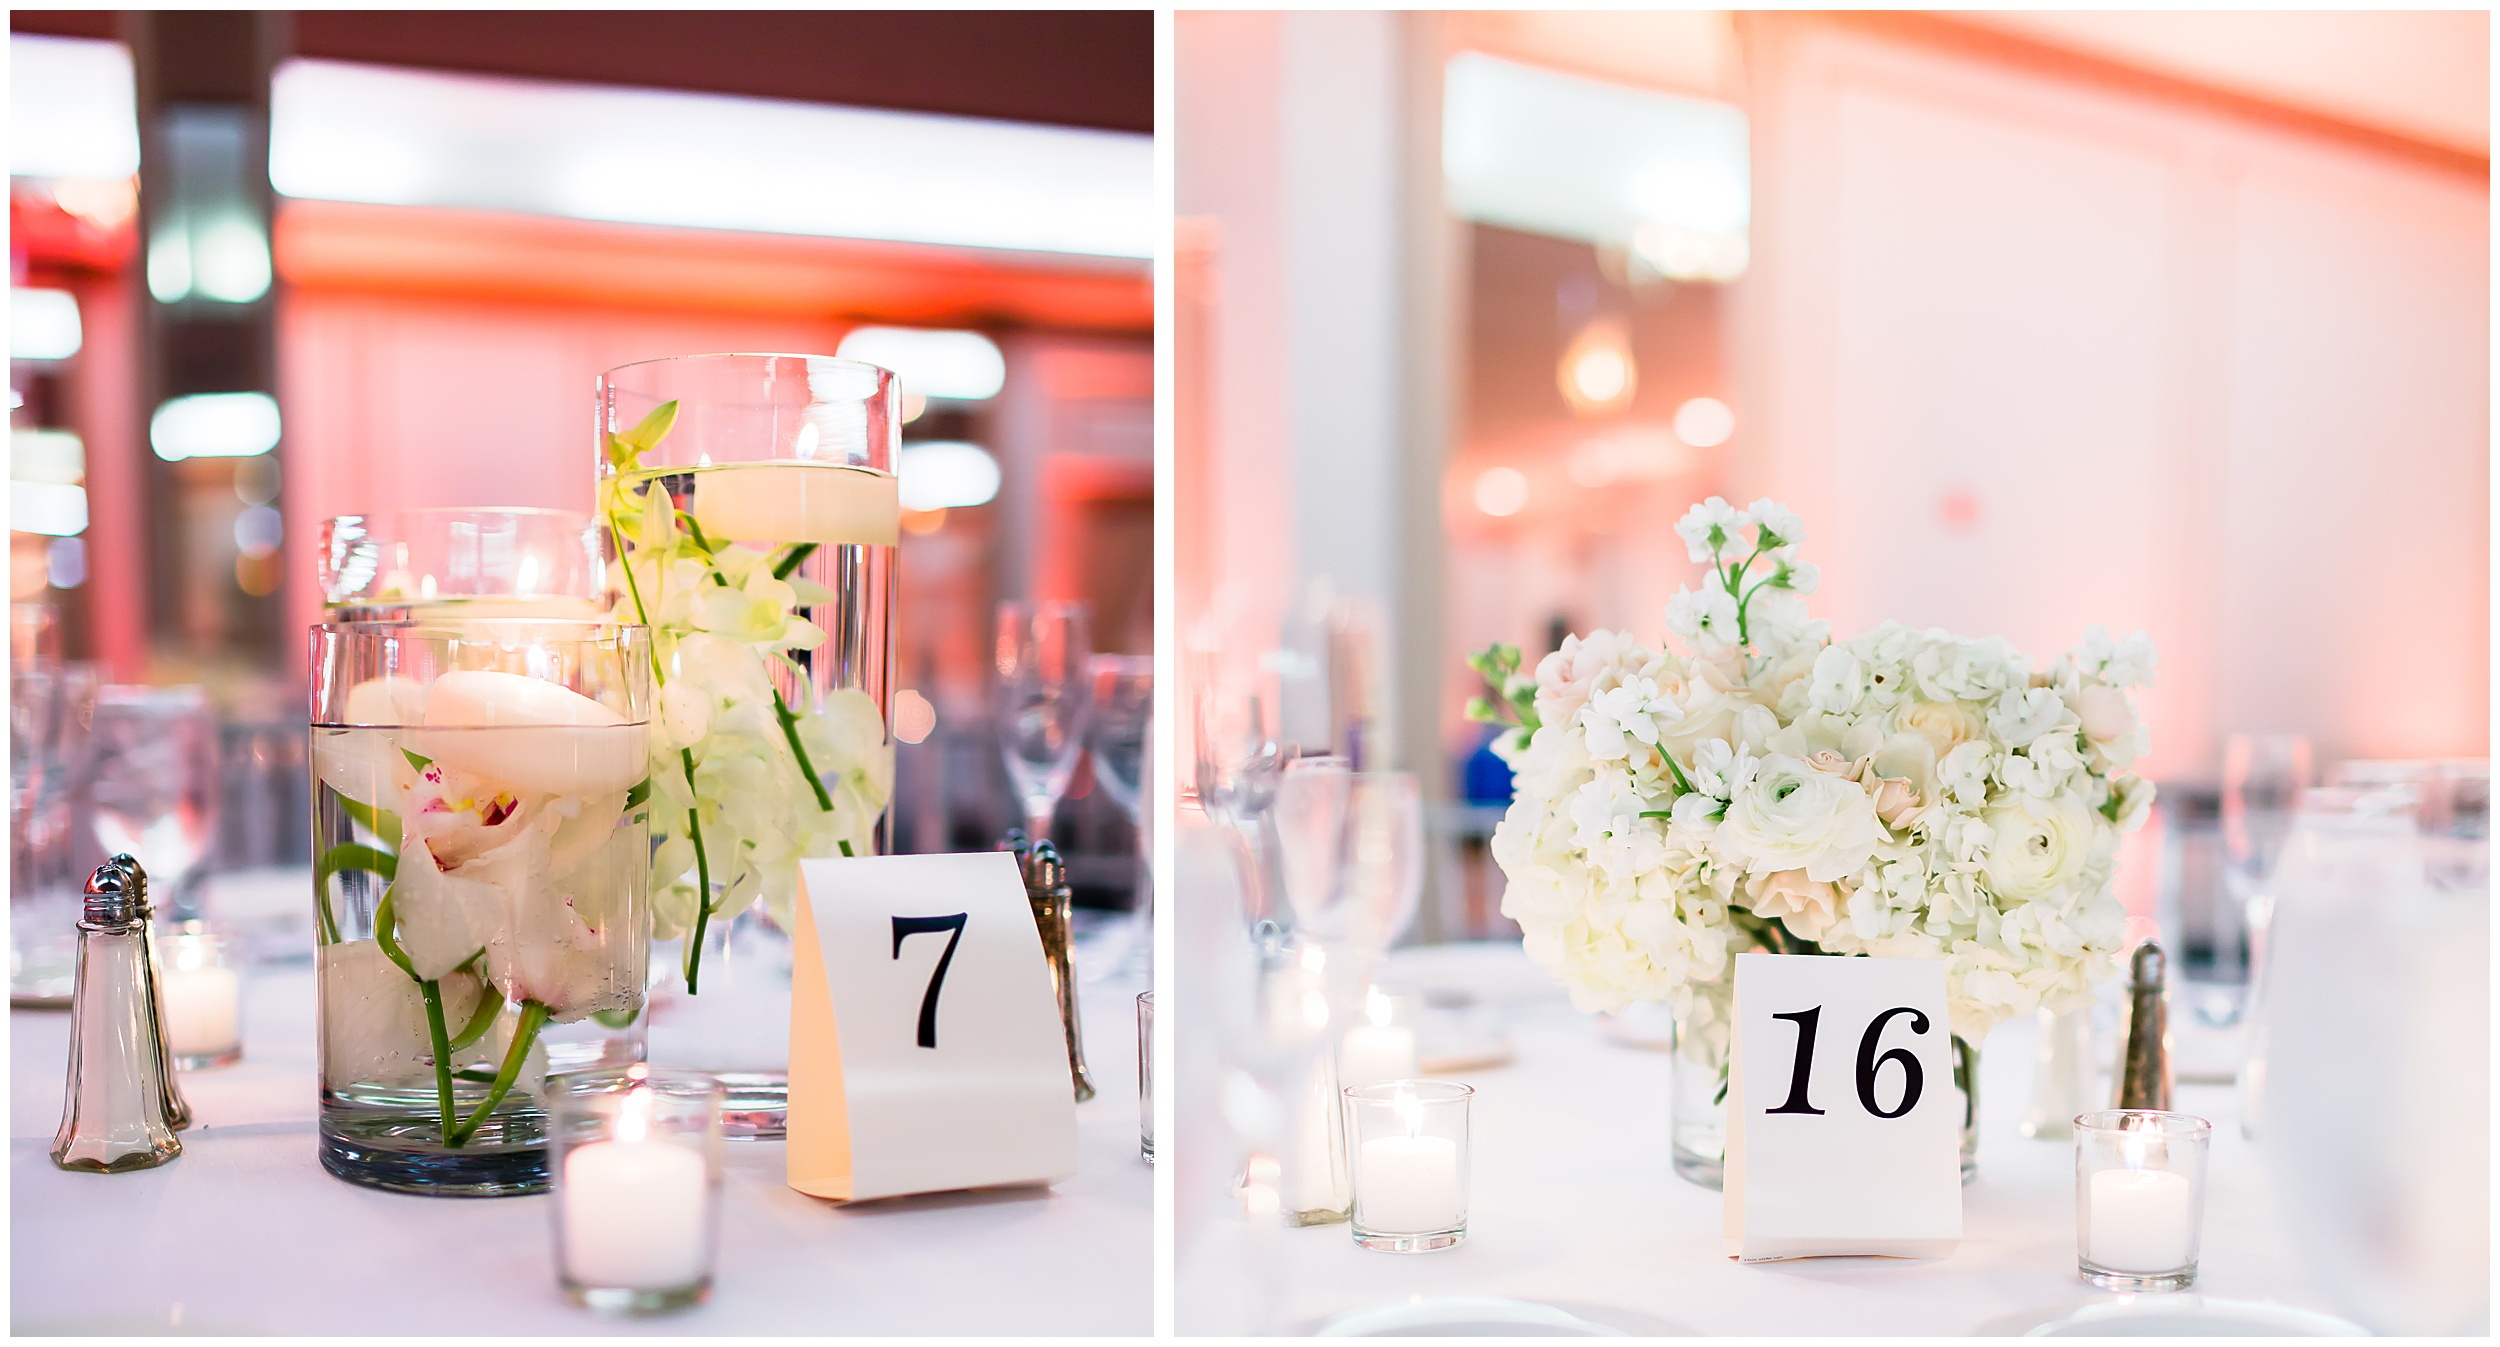 reception-details-flowers-hurricane-glasses-votives